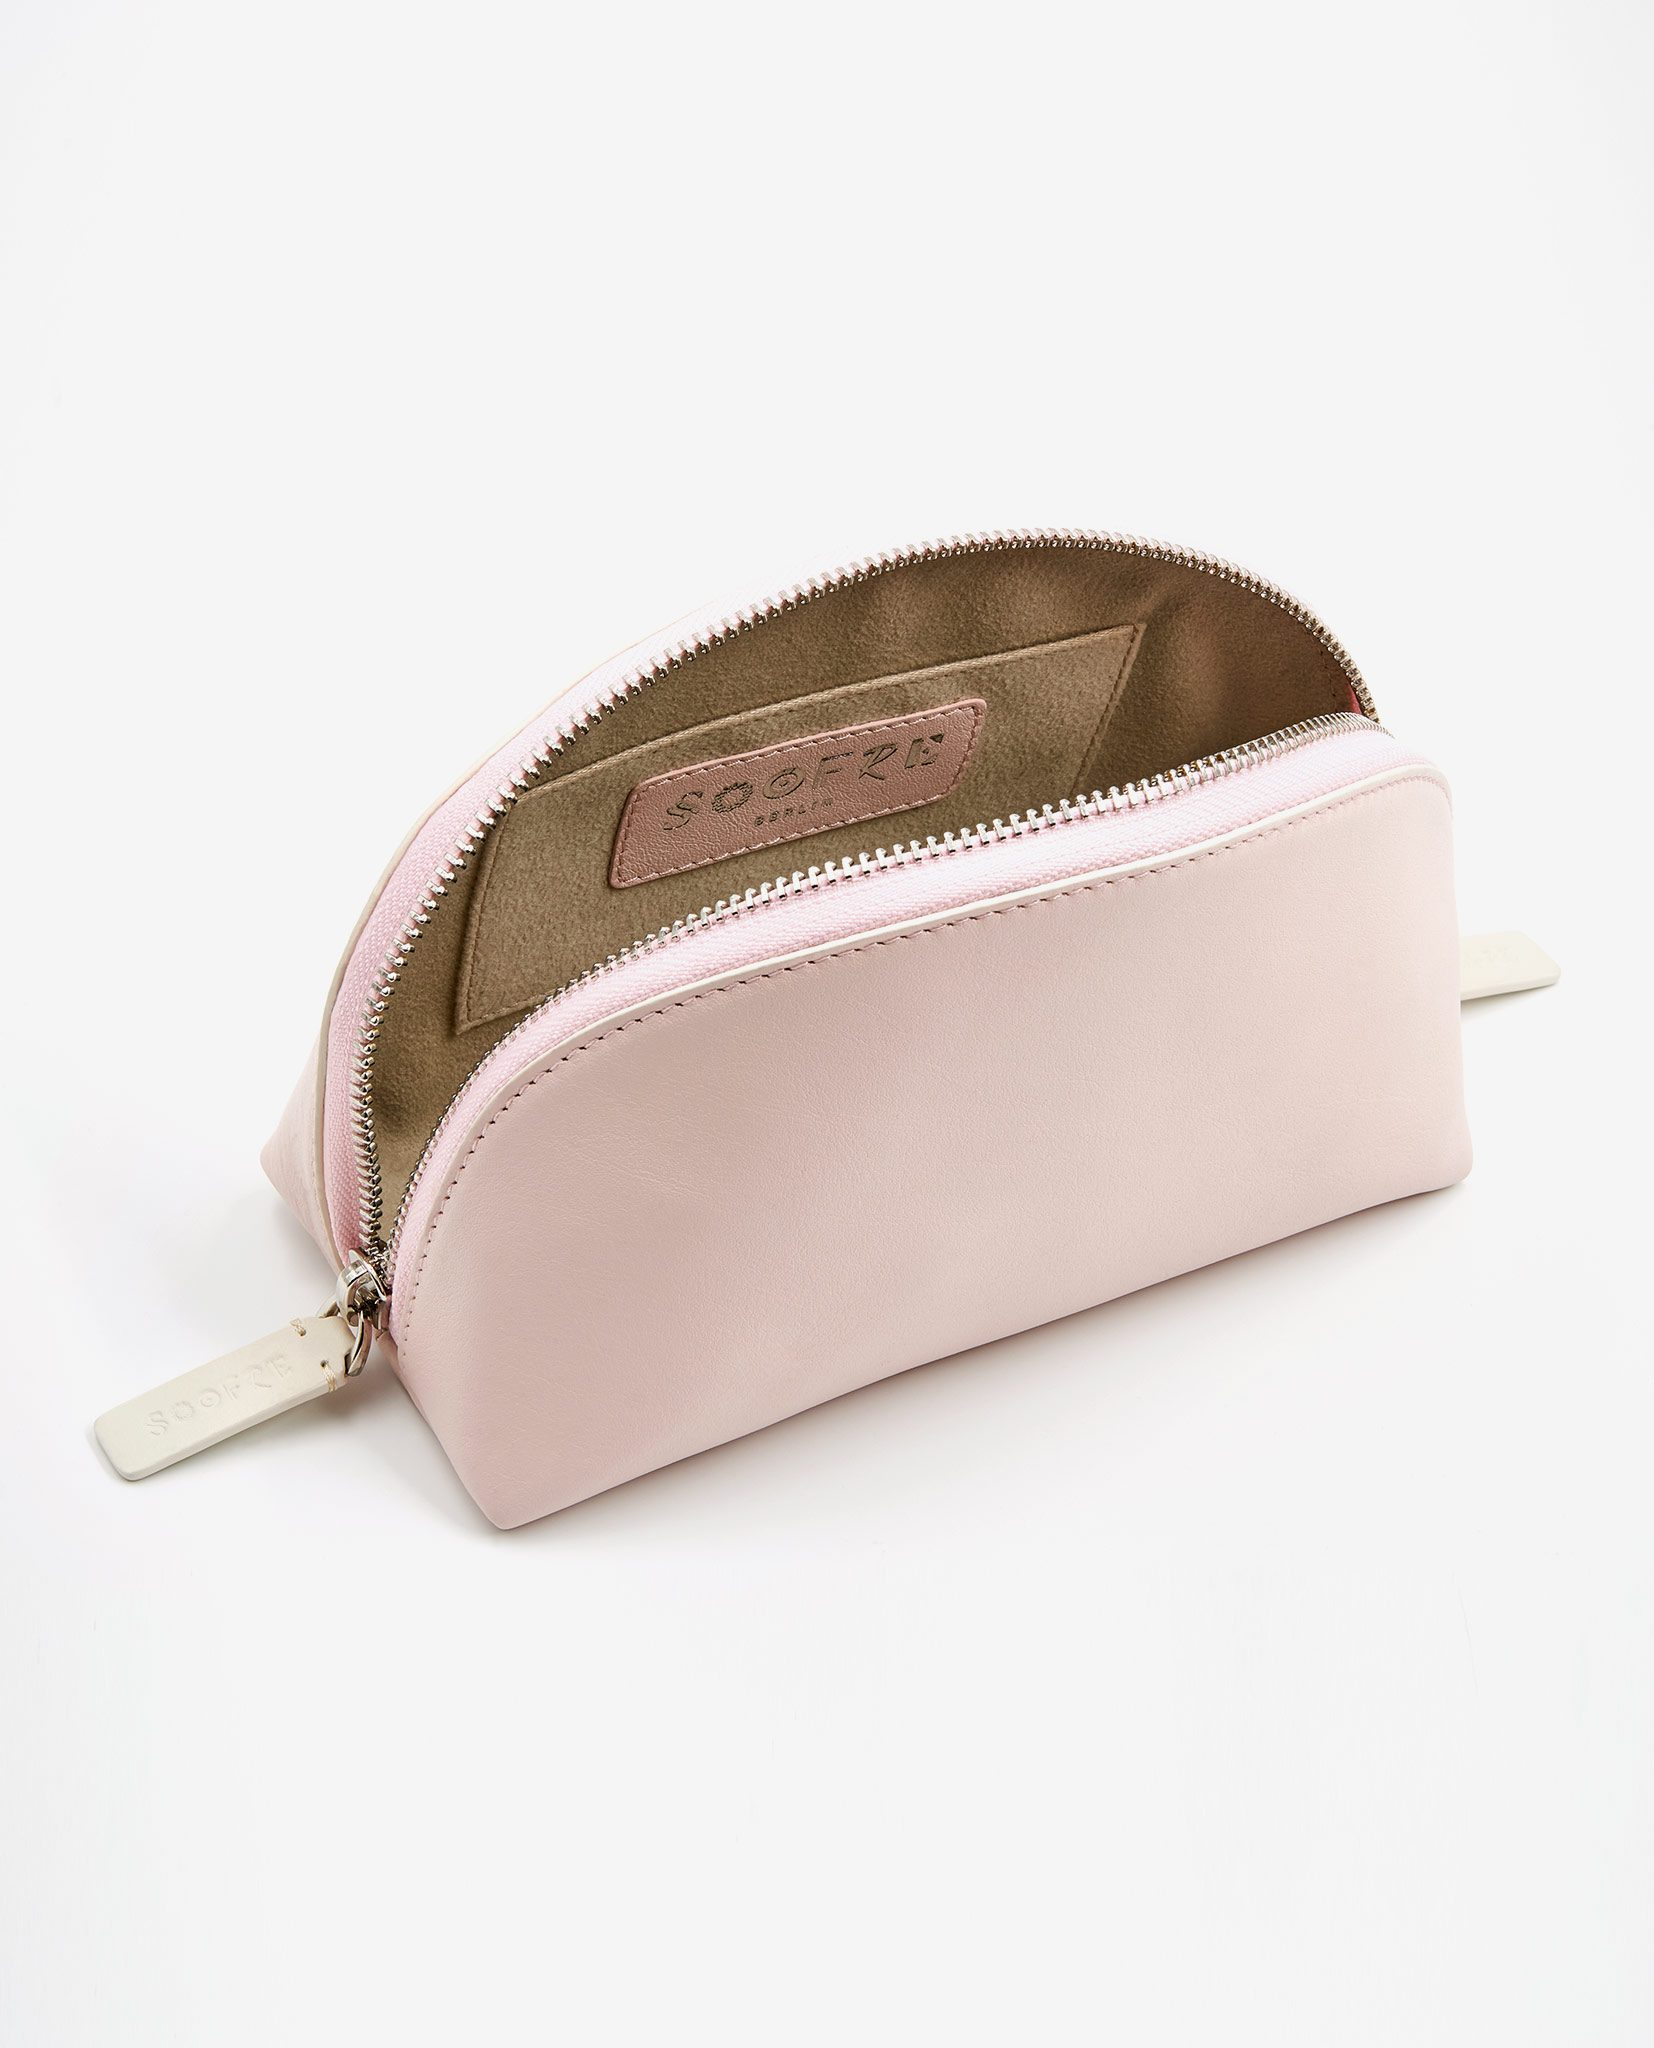 Soofre_Cosmetic-Cream-Blush-Beige-2